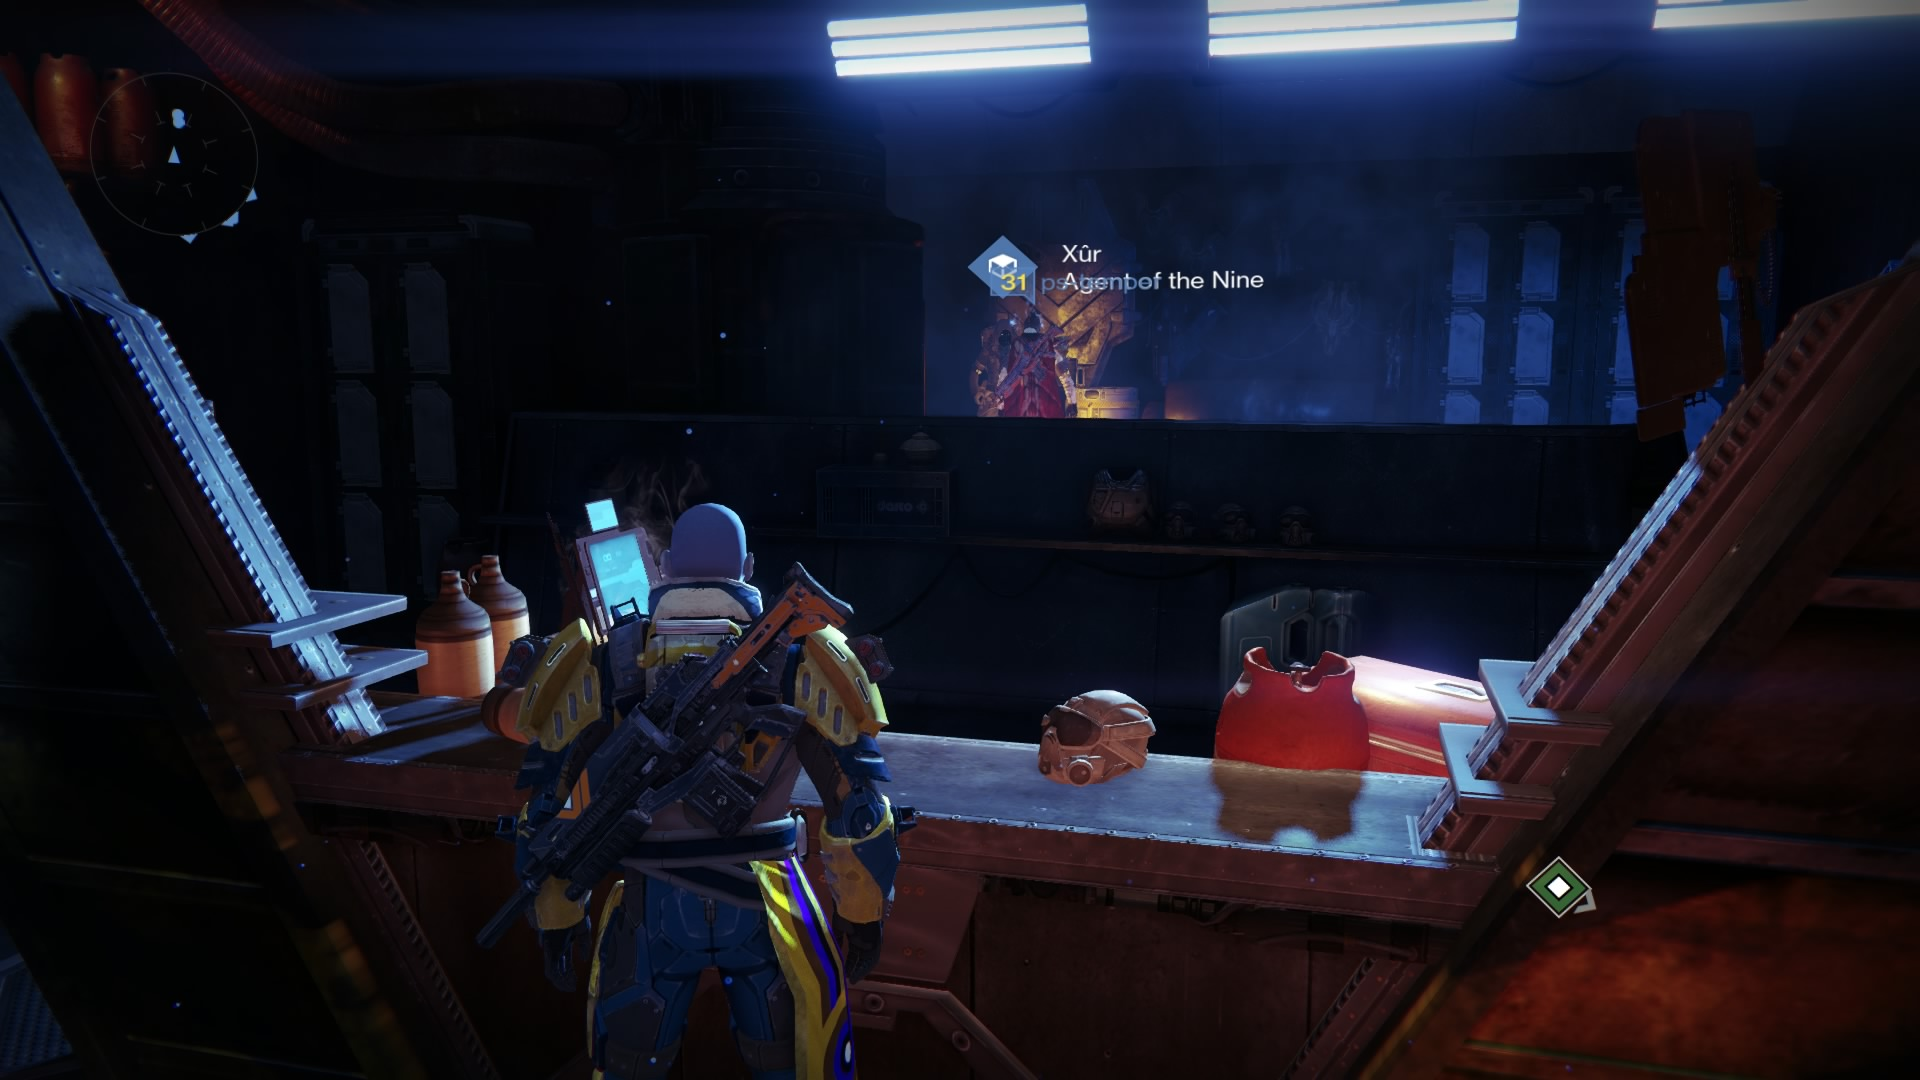 Xur, Agent of the Nine is in the Hanger, directly downstairs below the Future War Cult handler.